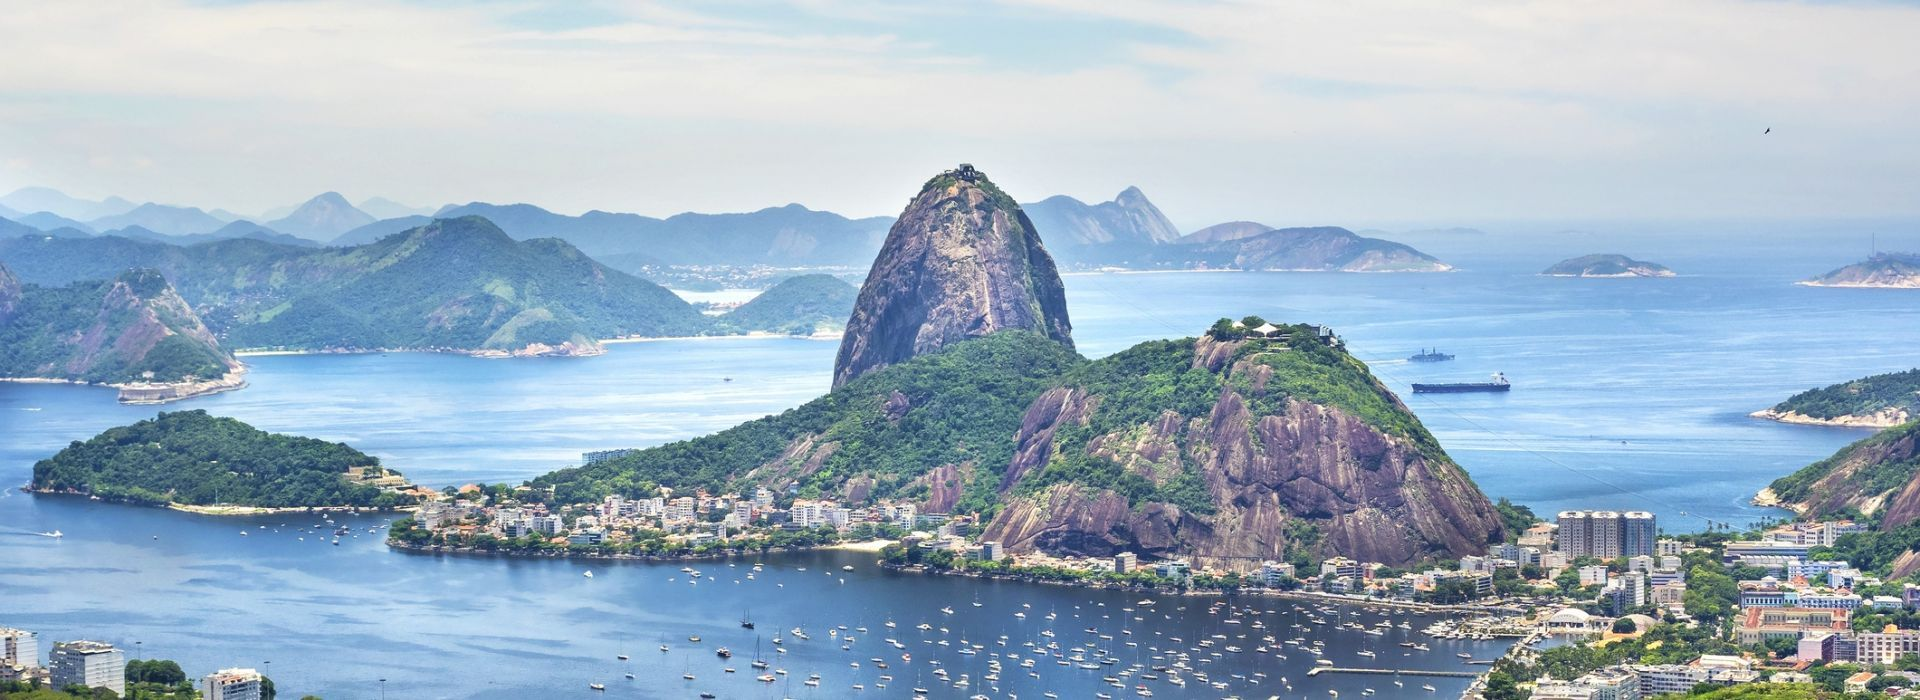 Sightseeing, attractions, culture and history Tours in Rio de Janeiro